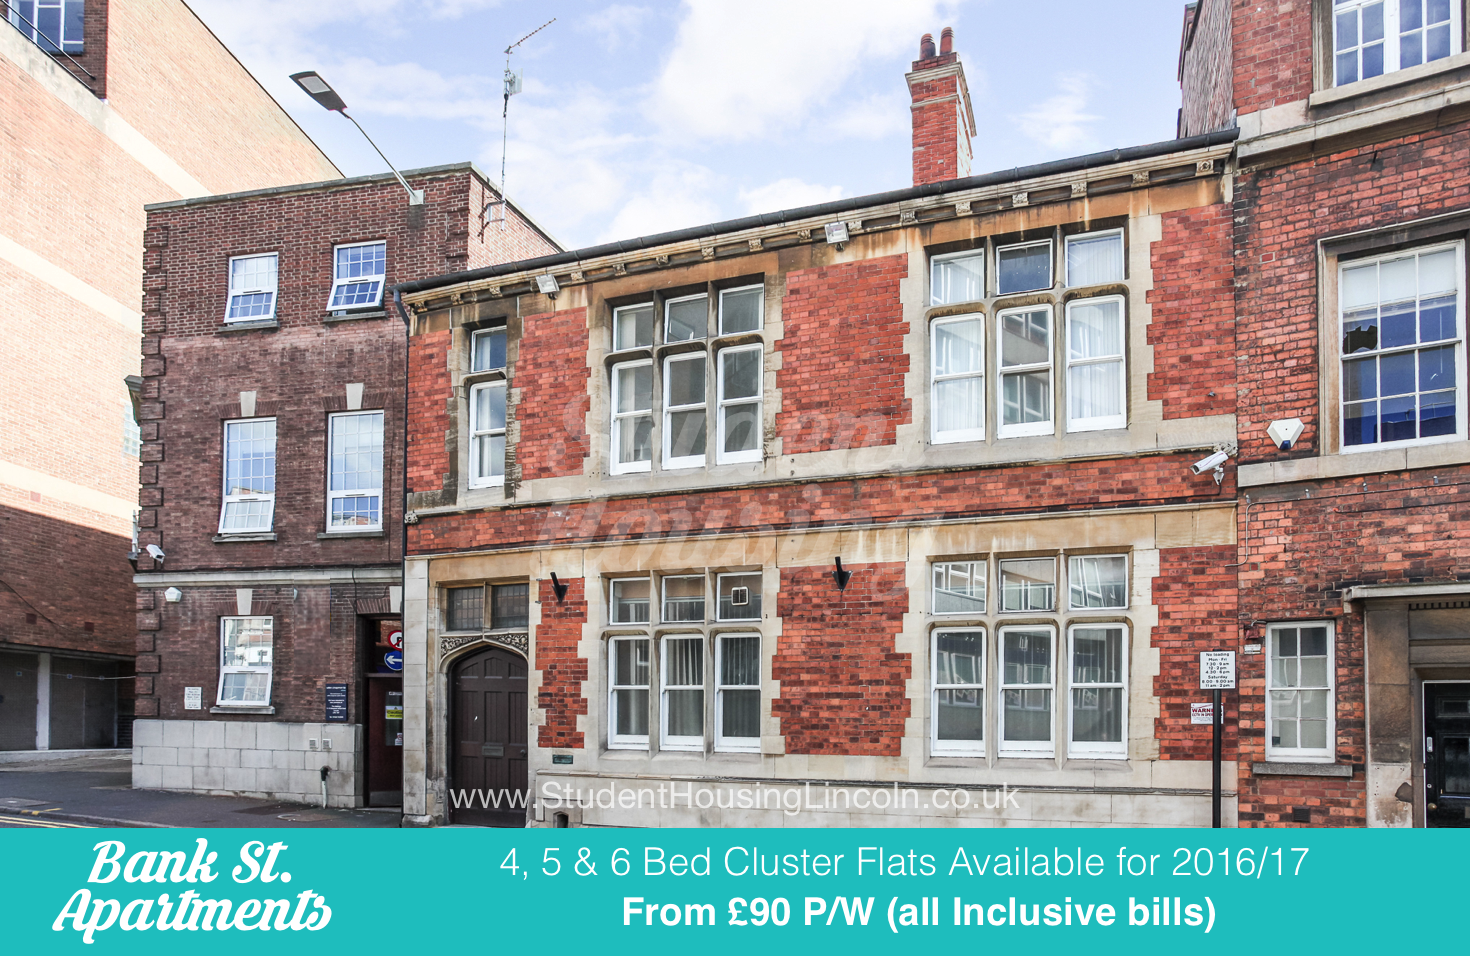 Bank St. Apartments – 5 Bed